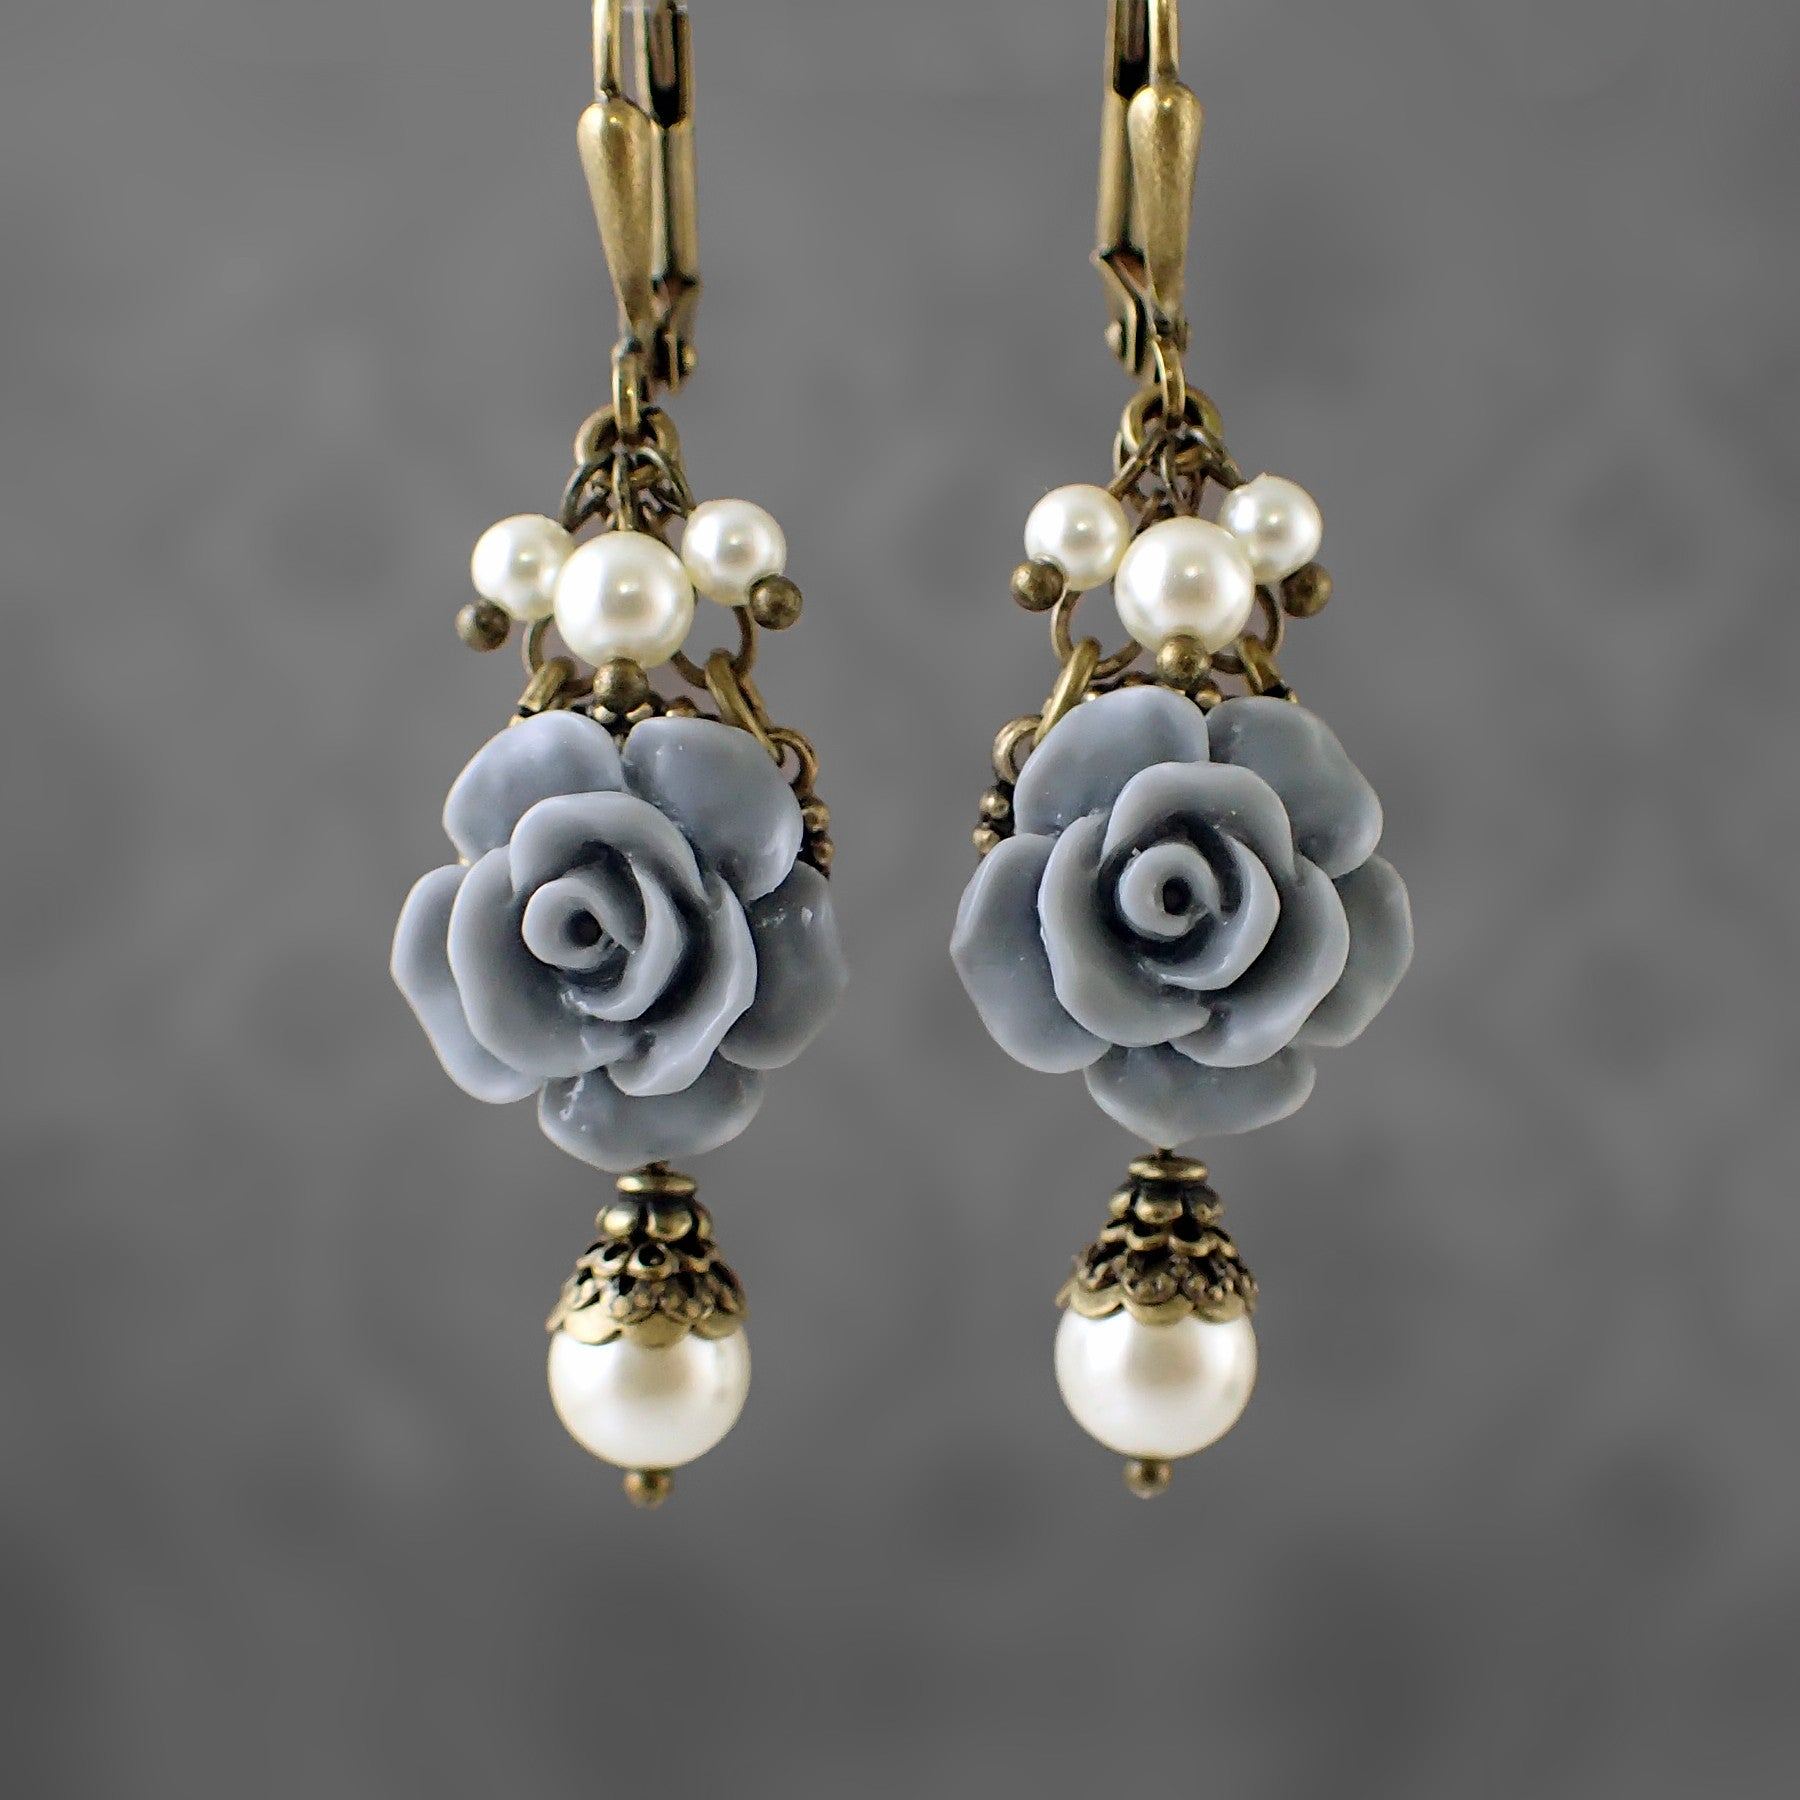 Dusty Blue and Ivory Shabby Rose Earrings